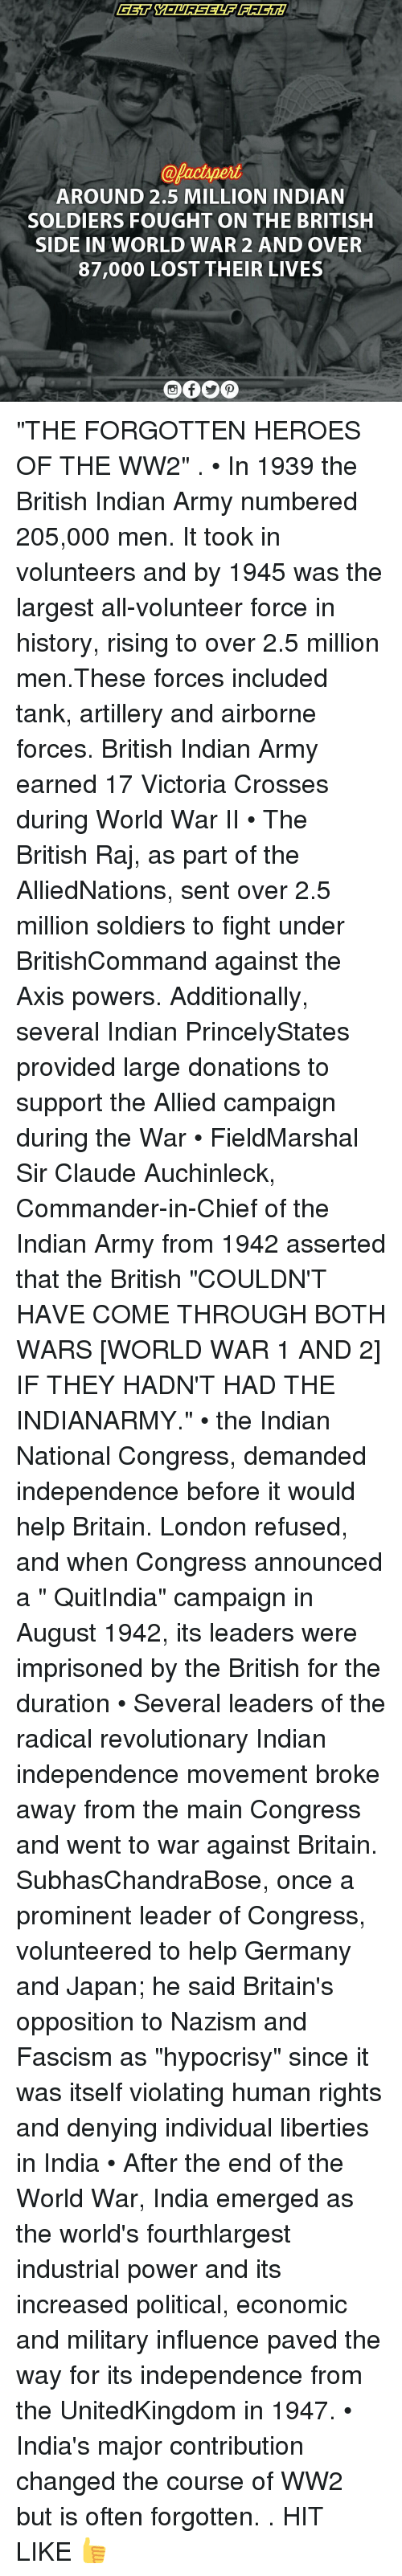 """Claud: @pactspert  AROUND 2.5 MILLION INDIAN  SOLDIERS FOUGHT ON THE BRITISH  SIDE IN WORLD WAR 2 AND OVER  87,000 LOST THEIR LIVES """"THE FORGOTTEN HEROES OF THE WW2"""" . • In 1939 the British Indian Army numbered 205,000 men. It took in volunteers and by 1945 was the largest all-volunteer force in history, rising to over 2.5 million men.These forces included tank, artillery and airborne forces. British Indian Army earned 17 Victoria Crosses during World War II • The British Raj, as part of the AlliedNations, sent over 2.5 million soldiers to fight under BritishCommand against the Axis powers. Additionally, several Indian PrincelyStates provided large donations to support the Allied campaign during the War • FieldMarshal Sir Claude Auchinleck, Commander-in-Chief of the Indian Army from 1942 asserted that the British """"COULDN'T HAVE COME THROUGH BOTH WARS [WORLD WAR 1 AND 2] IF THEY HADN'T HAD THE INDIANARMY."""" • the Indian National Congress, demanded independence before it would help Britain. London refused, and when Congress announced a """" QuitIndia"""" campaign in August 1942, its leaders were imprisoned by the British for the duration • Several leaders of the radical revolutionary Indian independence movement broke away from the main Congress and went to war against Britain. SubhasChandraBose, once a prominent leader of Congress, volunteered to help Germany and Japan; he said Britain's opposition to Nazism and Fascism as """"hypocrisy"""" since it was itself violating human rights and denying individual liberties in India • After the end of the World War, India emerged as the world's fourthlargest industrial power and its increased political, economic and military influence paved the way for its independence from the UnitedKingdom in 1947. • India's major contribution changed the course of WW2 but is often forgotten. . HIT LIKE 👍"""